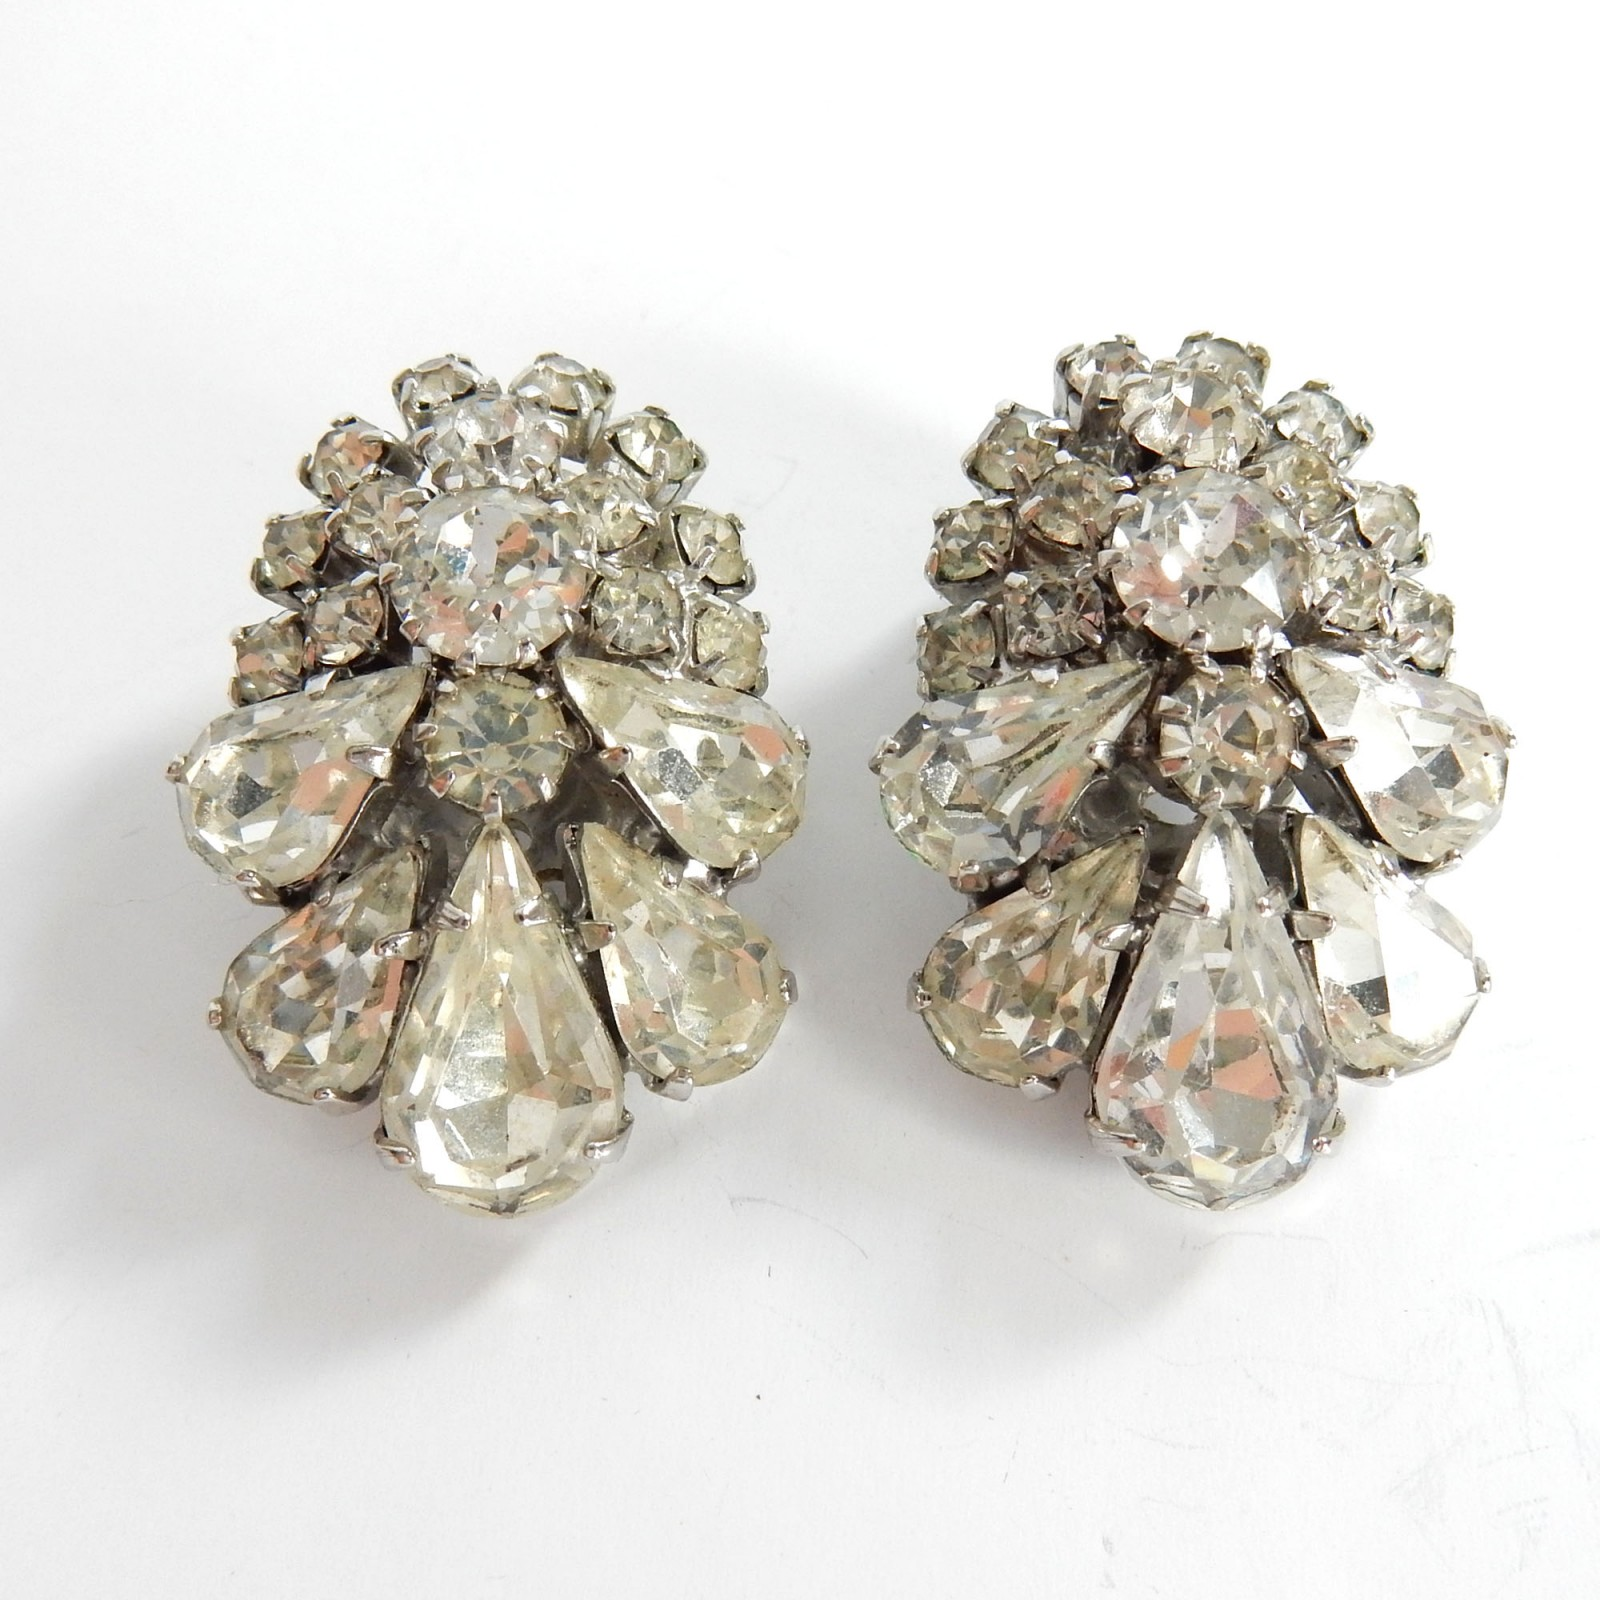 Photo of Antique White Ice Rhinestone Deco Clip on Earrings